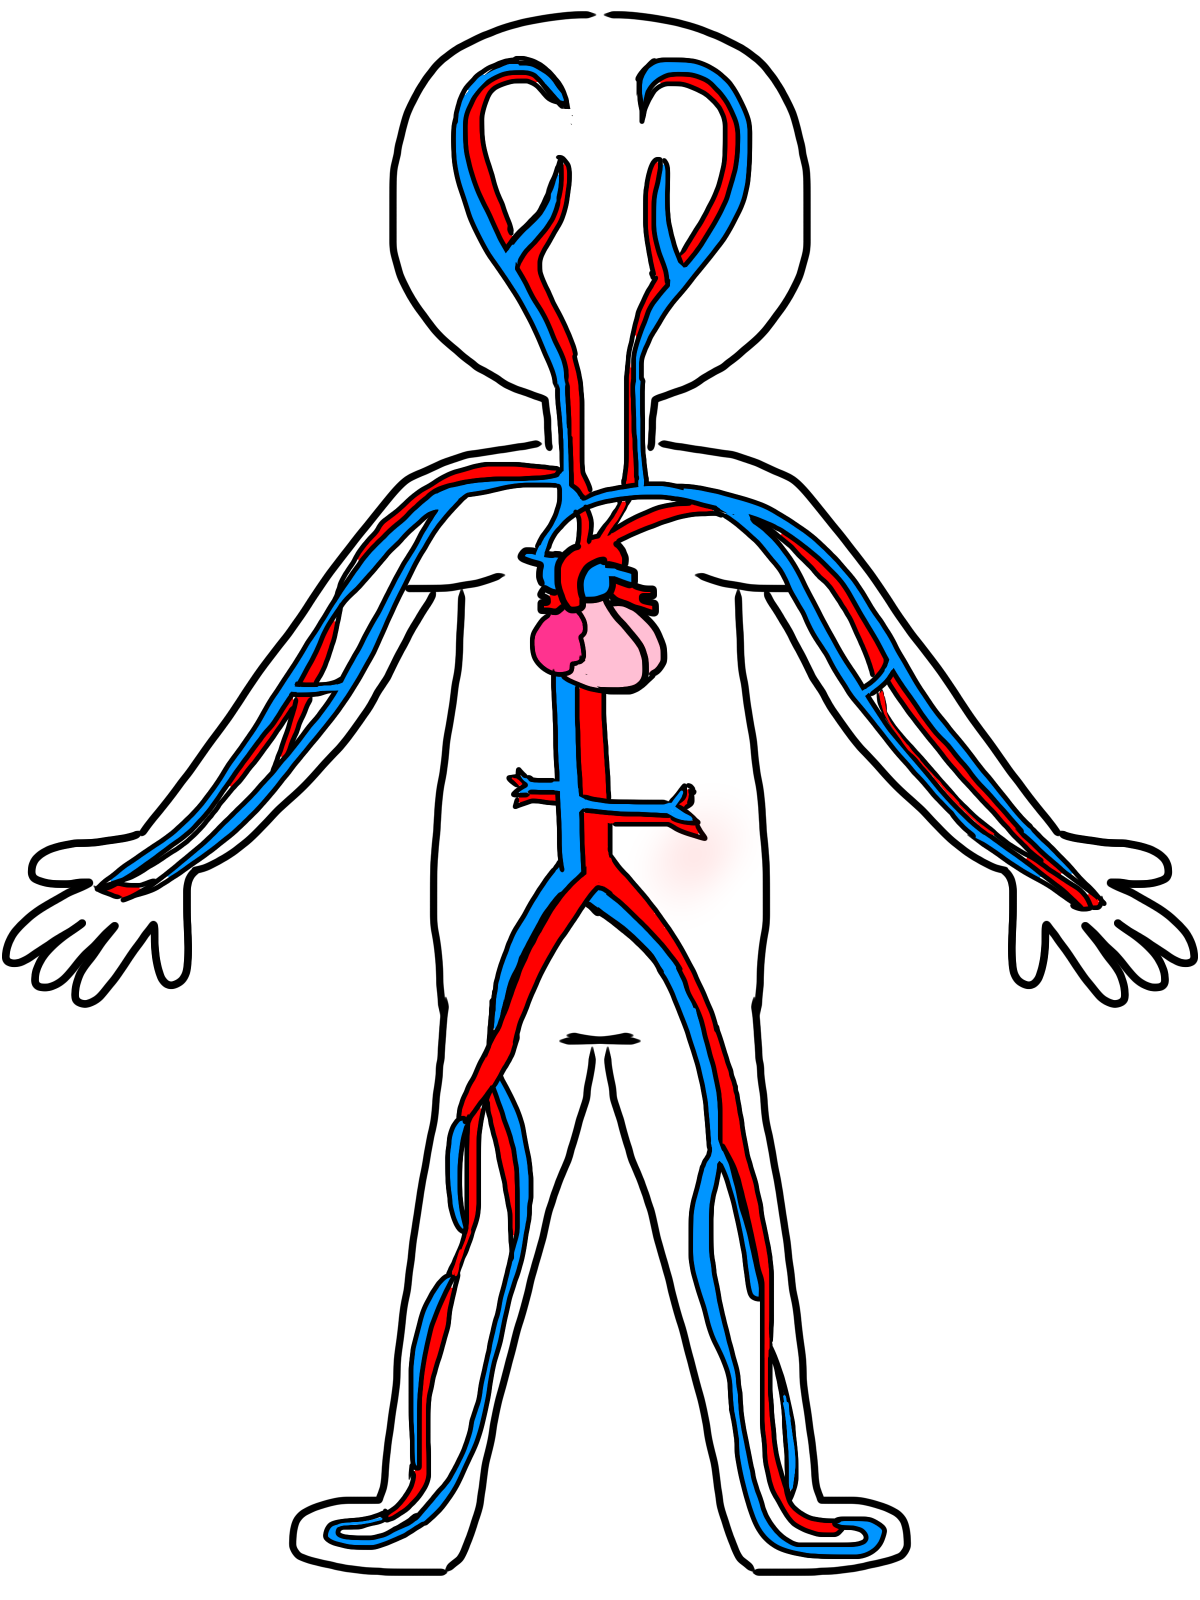 Heart Anatomy Clipart At Getdrawings Free For Personal Use